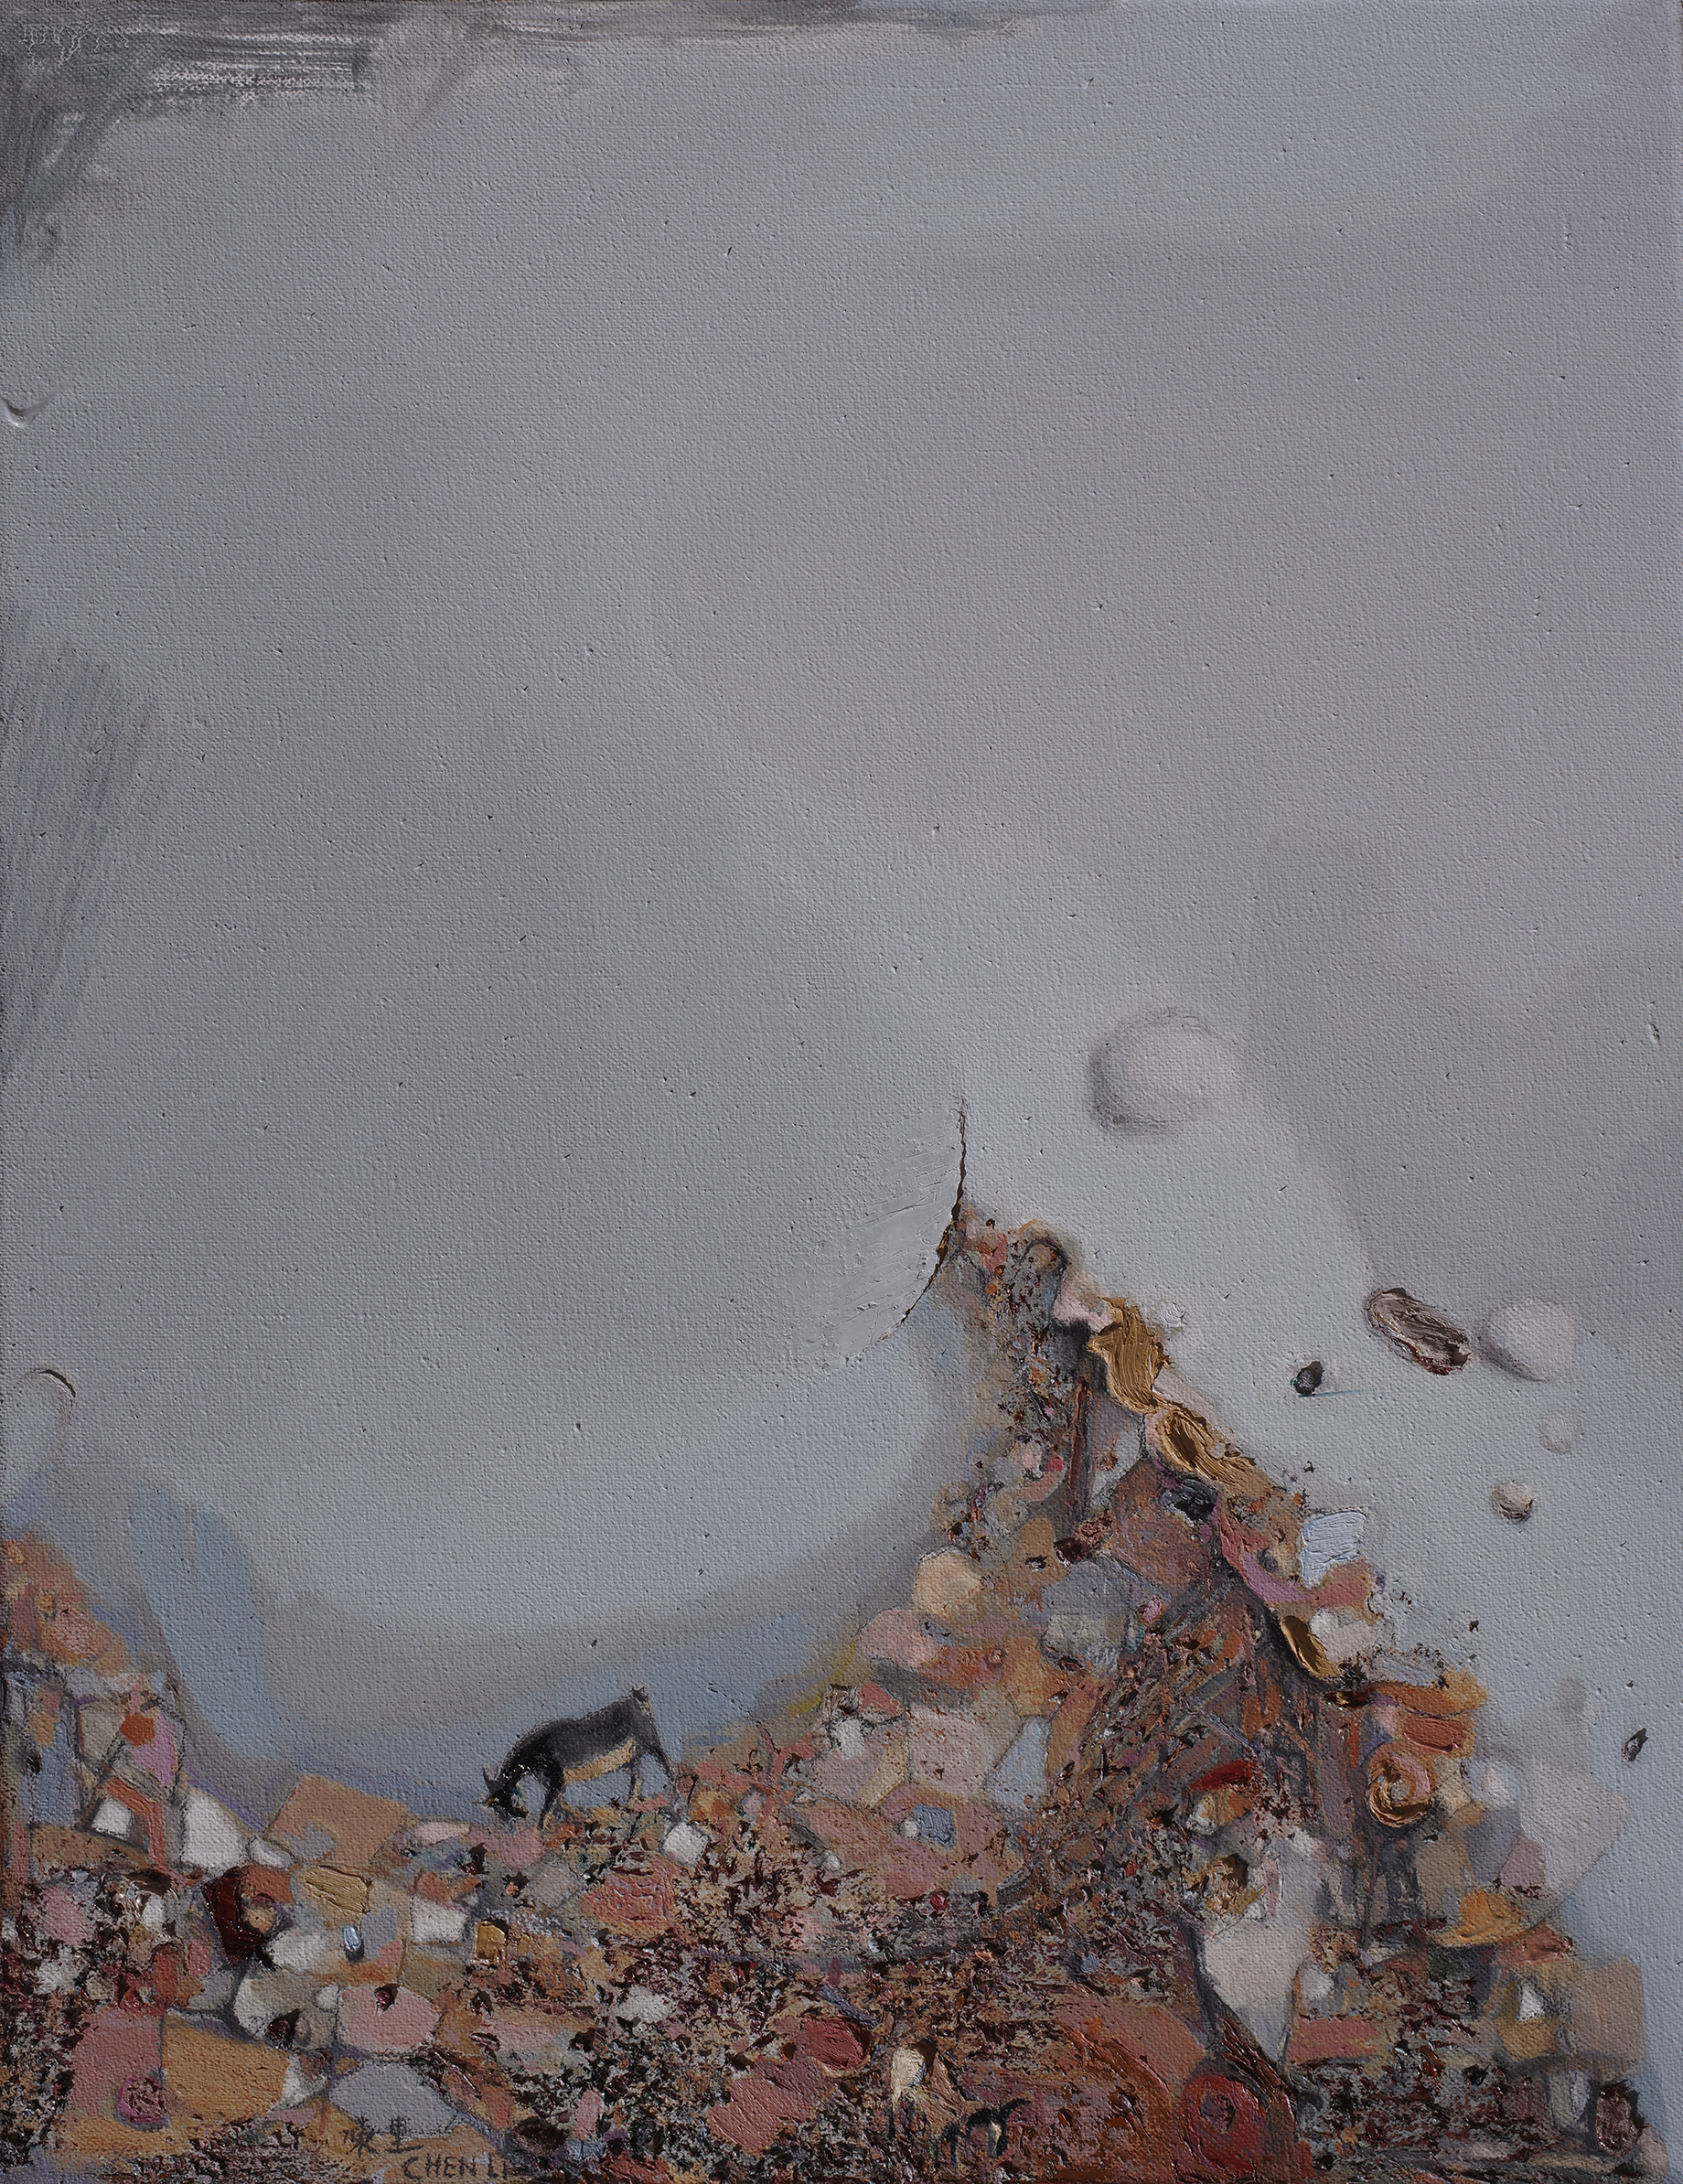 Chen Li, Dongchuan Mountains II, 2012, oil on canvas, 90cm x 70cm, private collection, United Kingdom